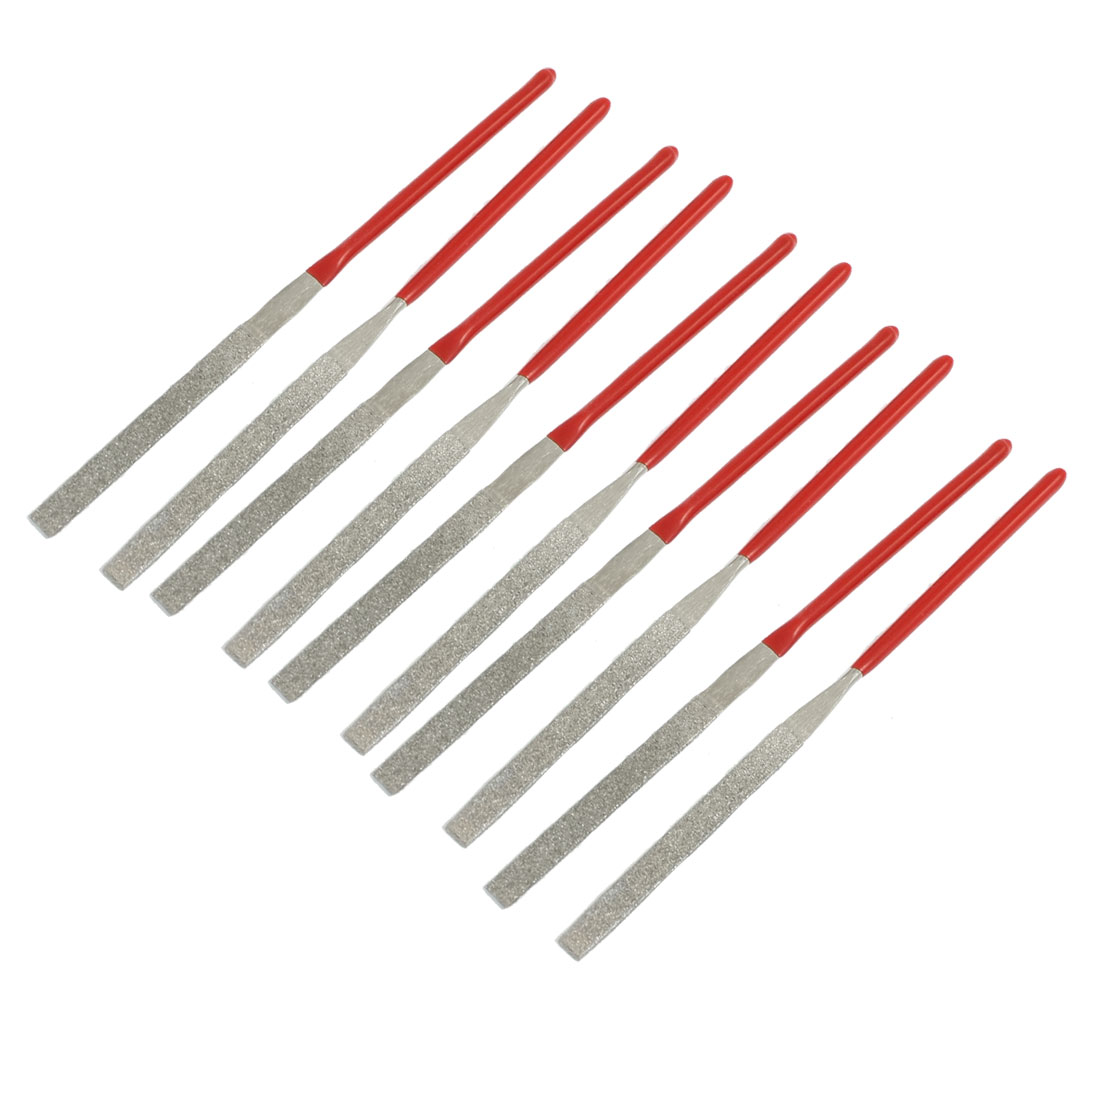 10 Pcs Red Handle 2mm x 100mm Woodwork Equalling Flat Needle Files Set